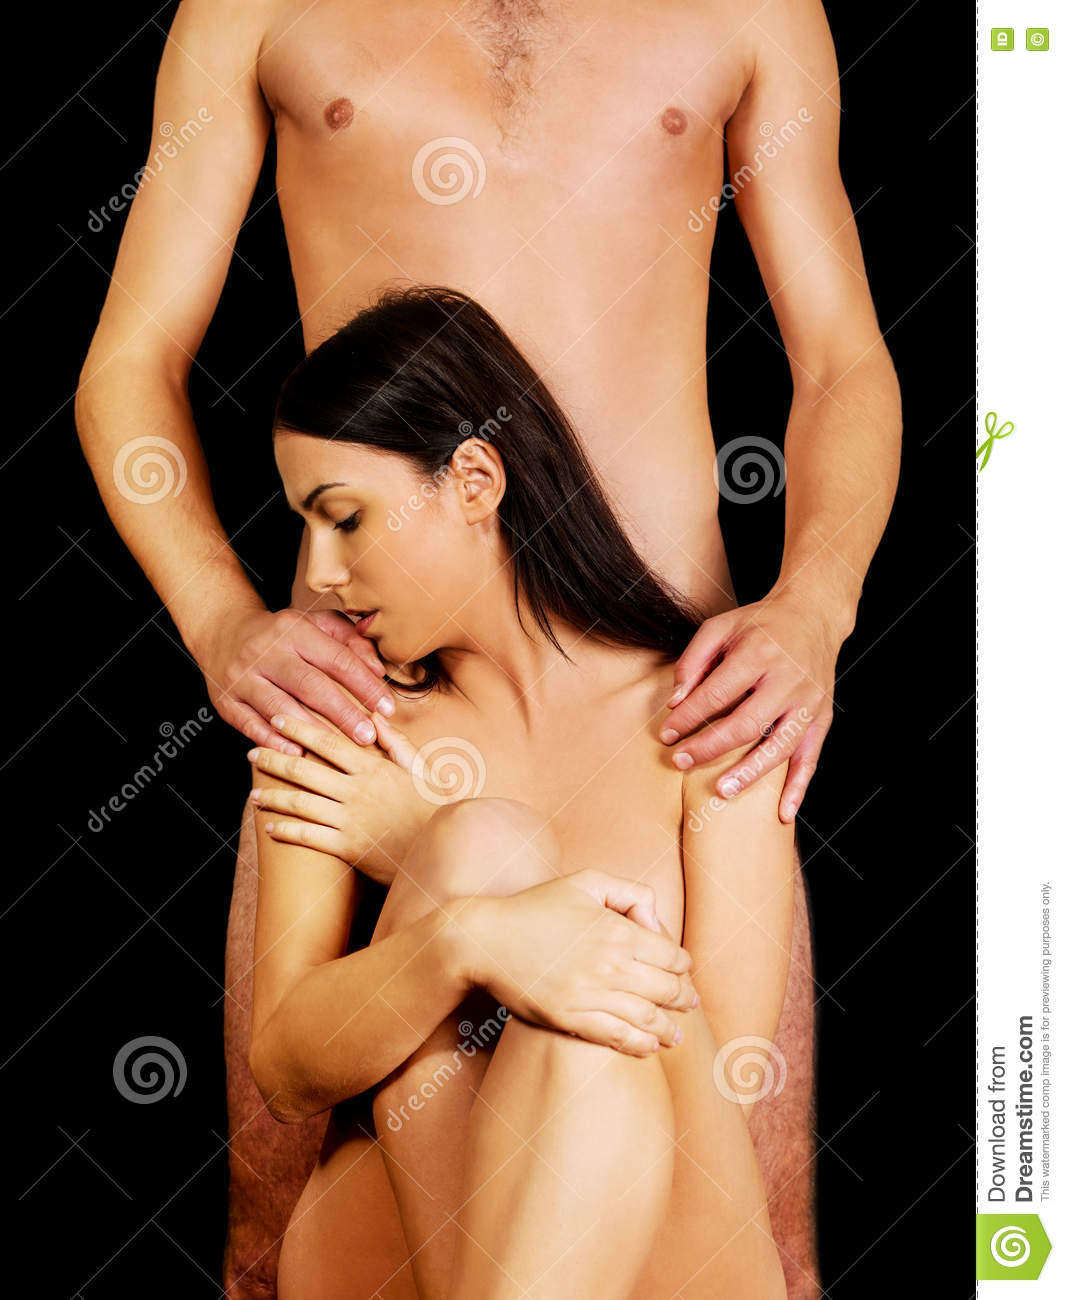 Naked Couple Holding Hands Images, Stock Photos Vectors